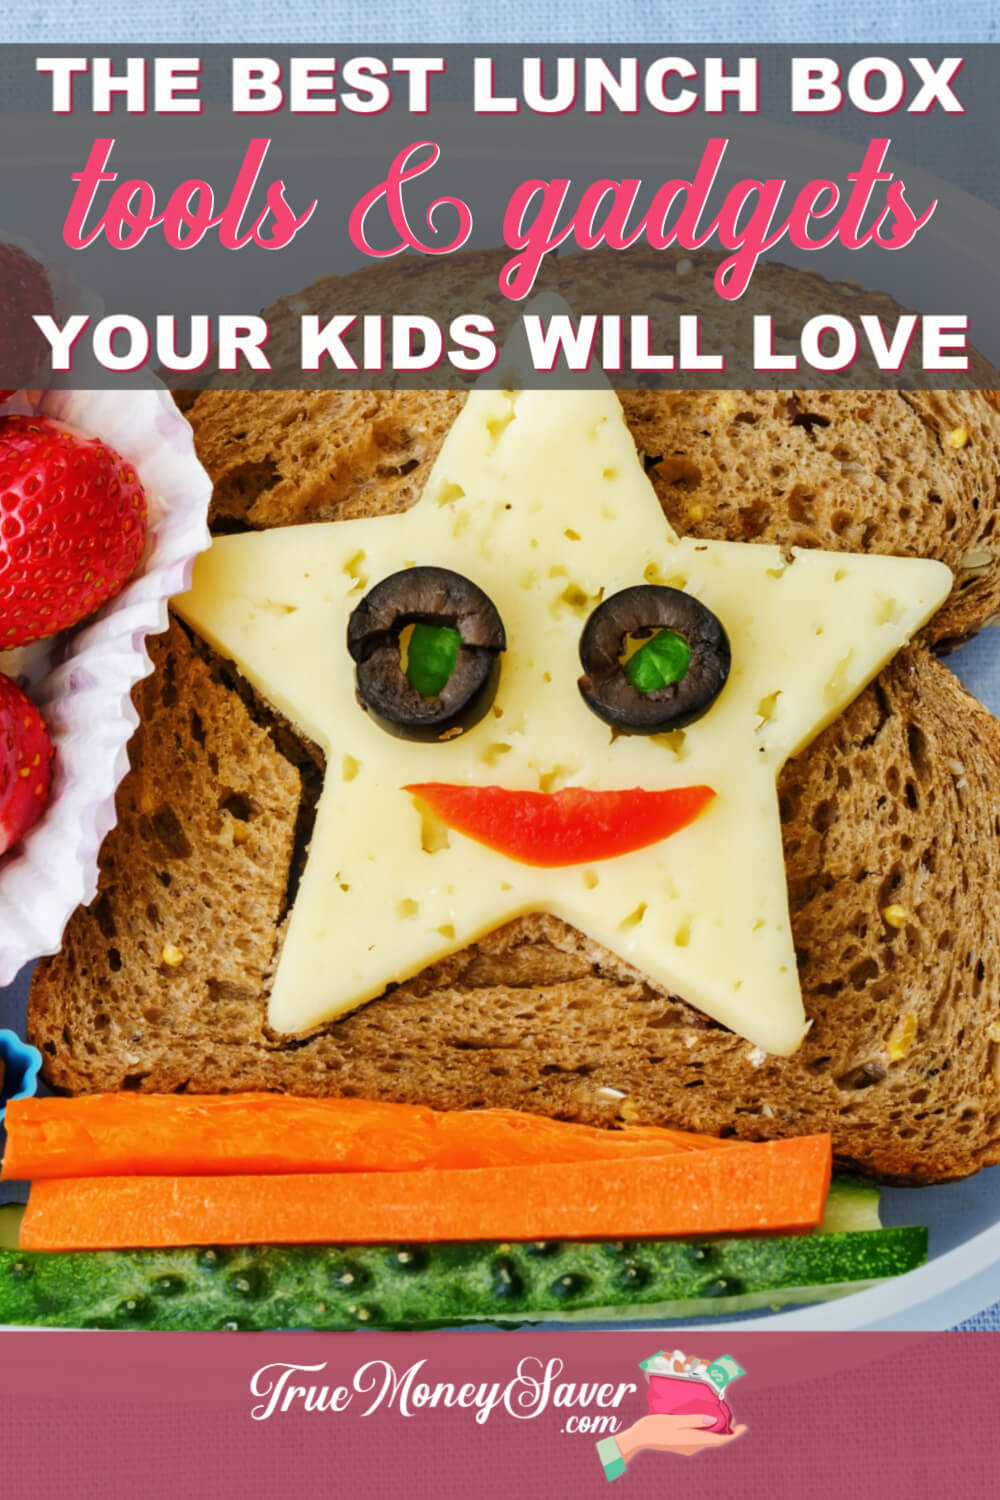 The Best Lunch Box Tools & Gadgets Your Kids Will Love